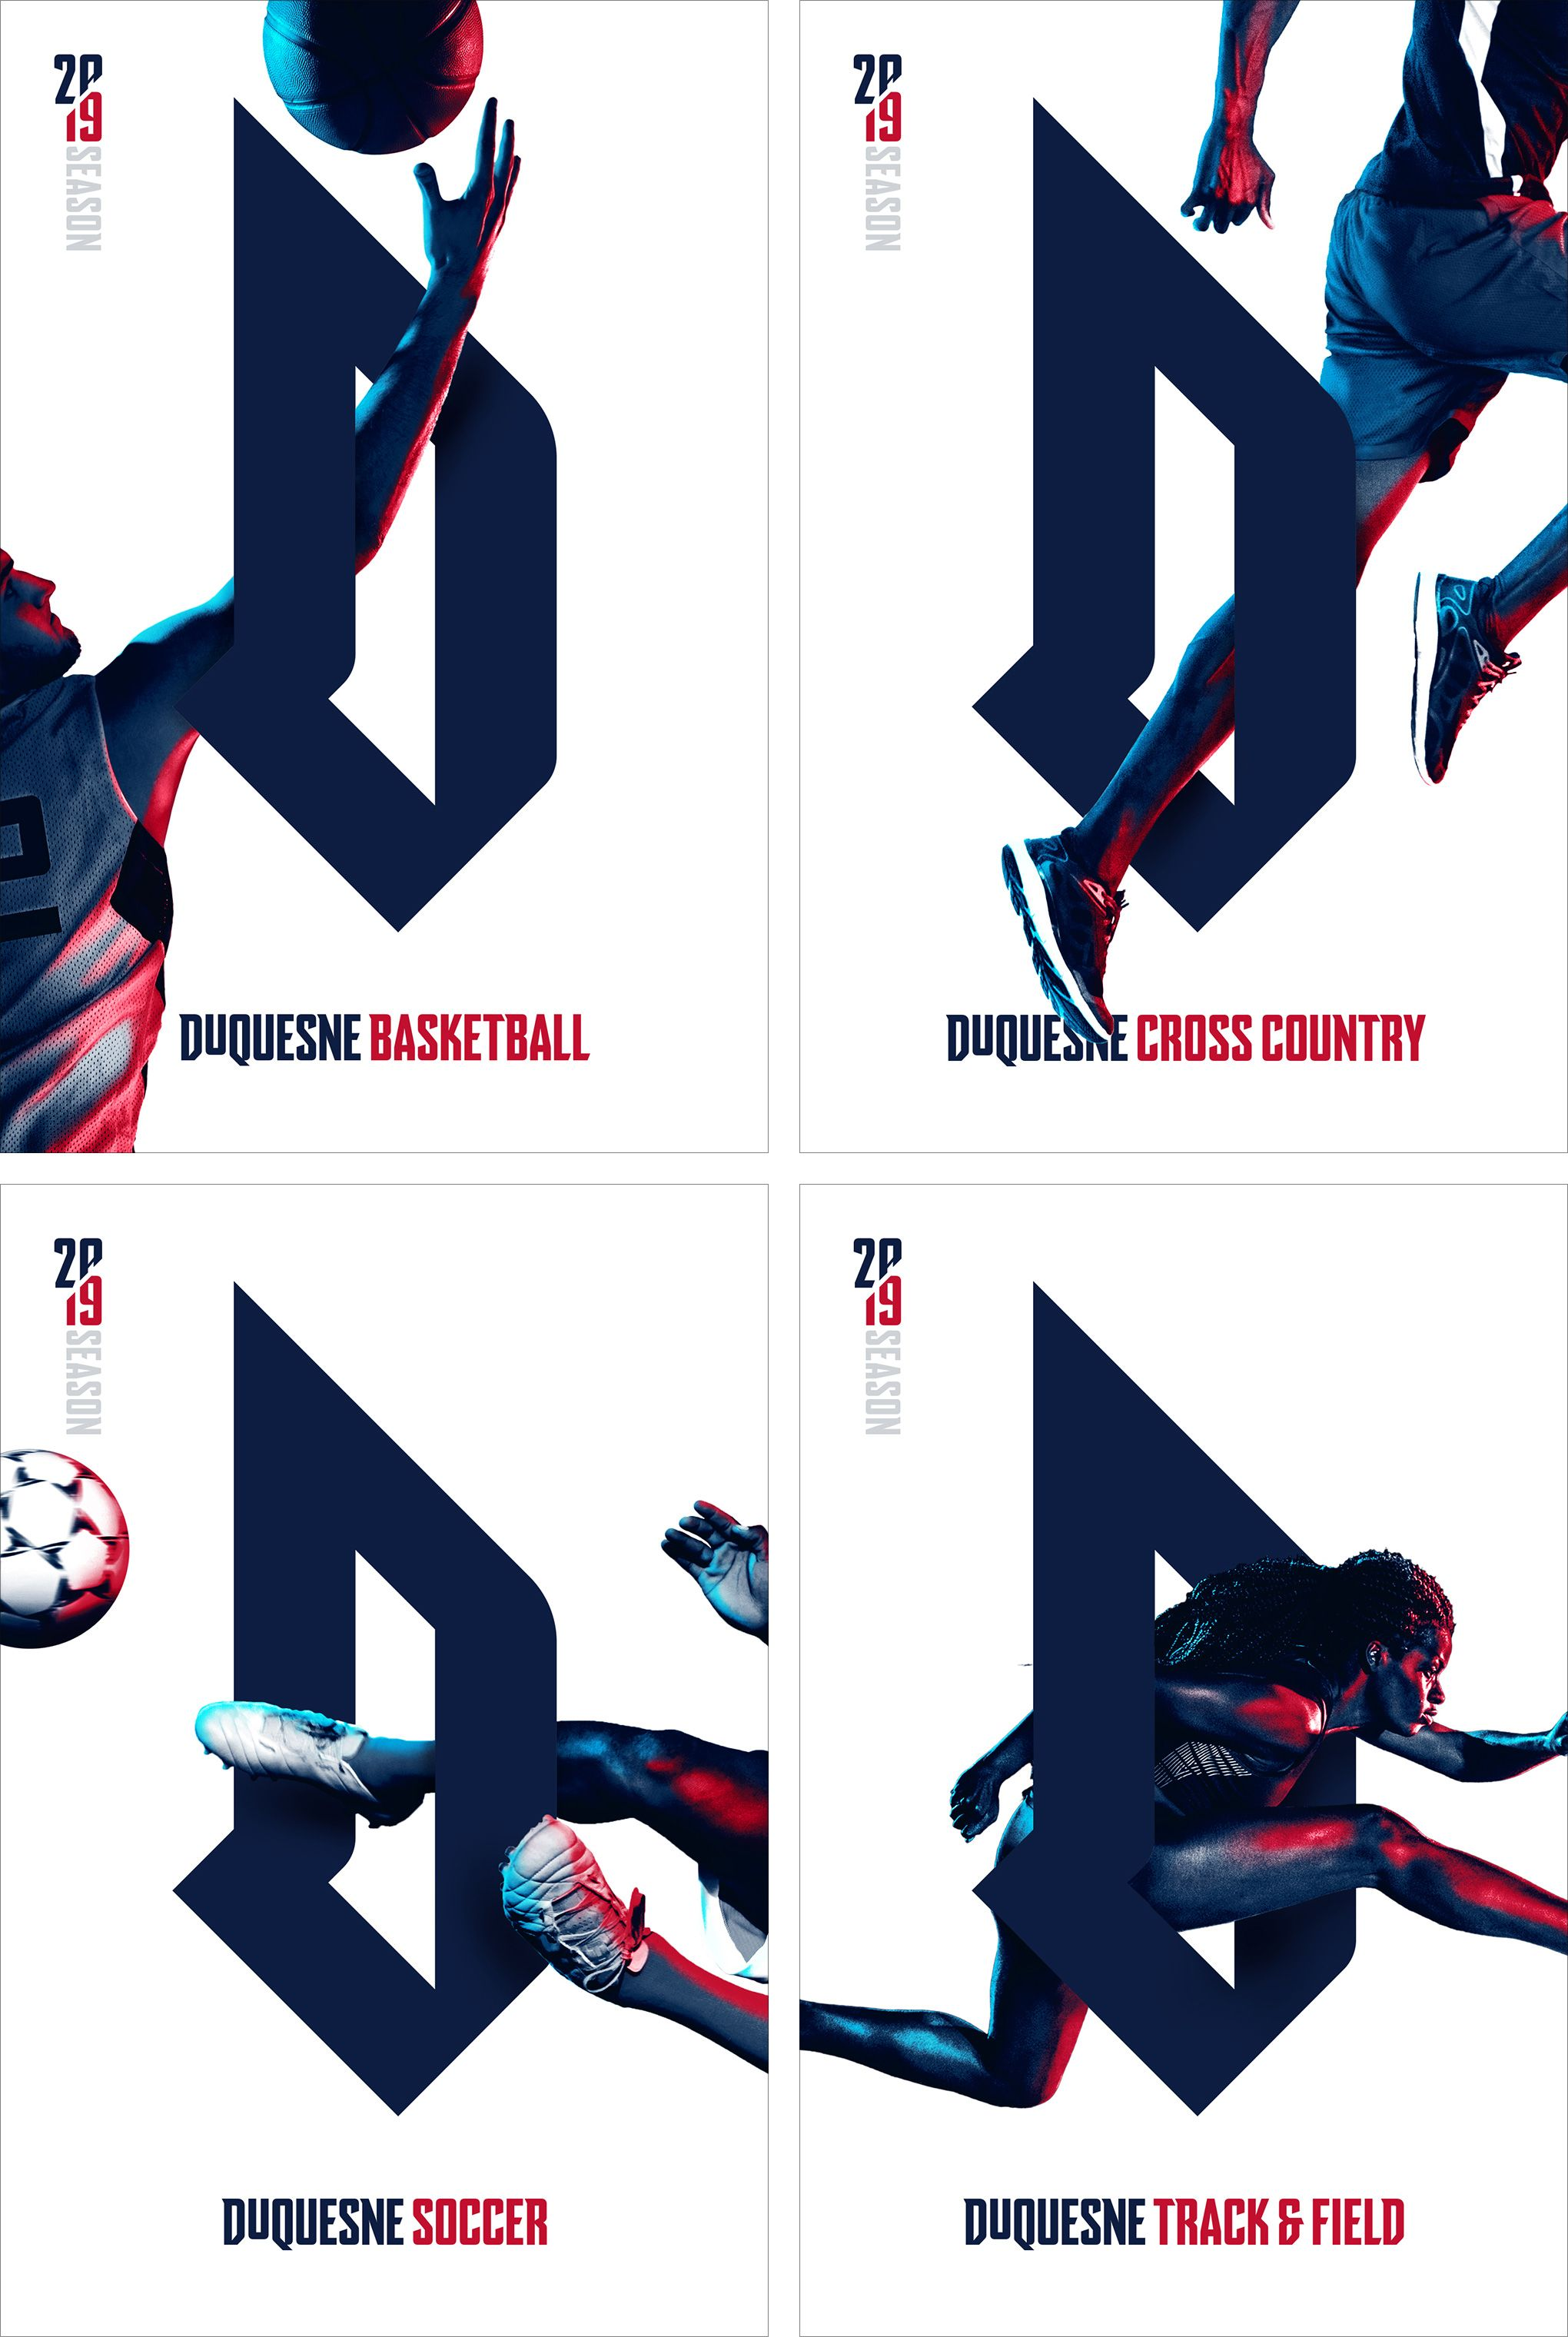 Brand New: New Logo and Identity for Duquesne University.